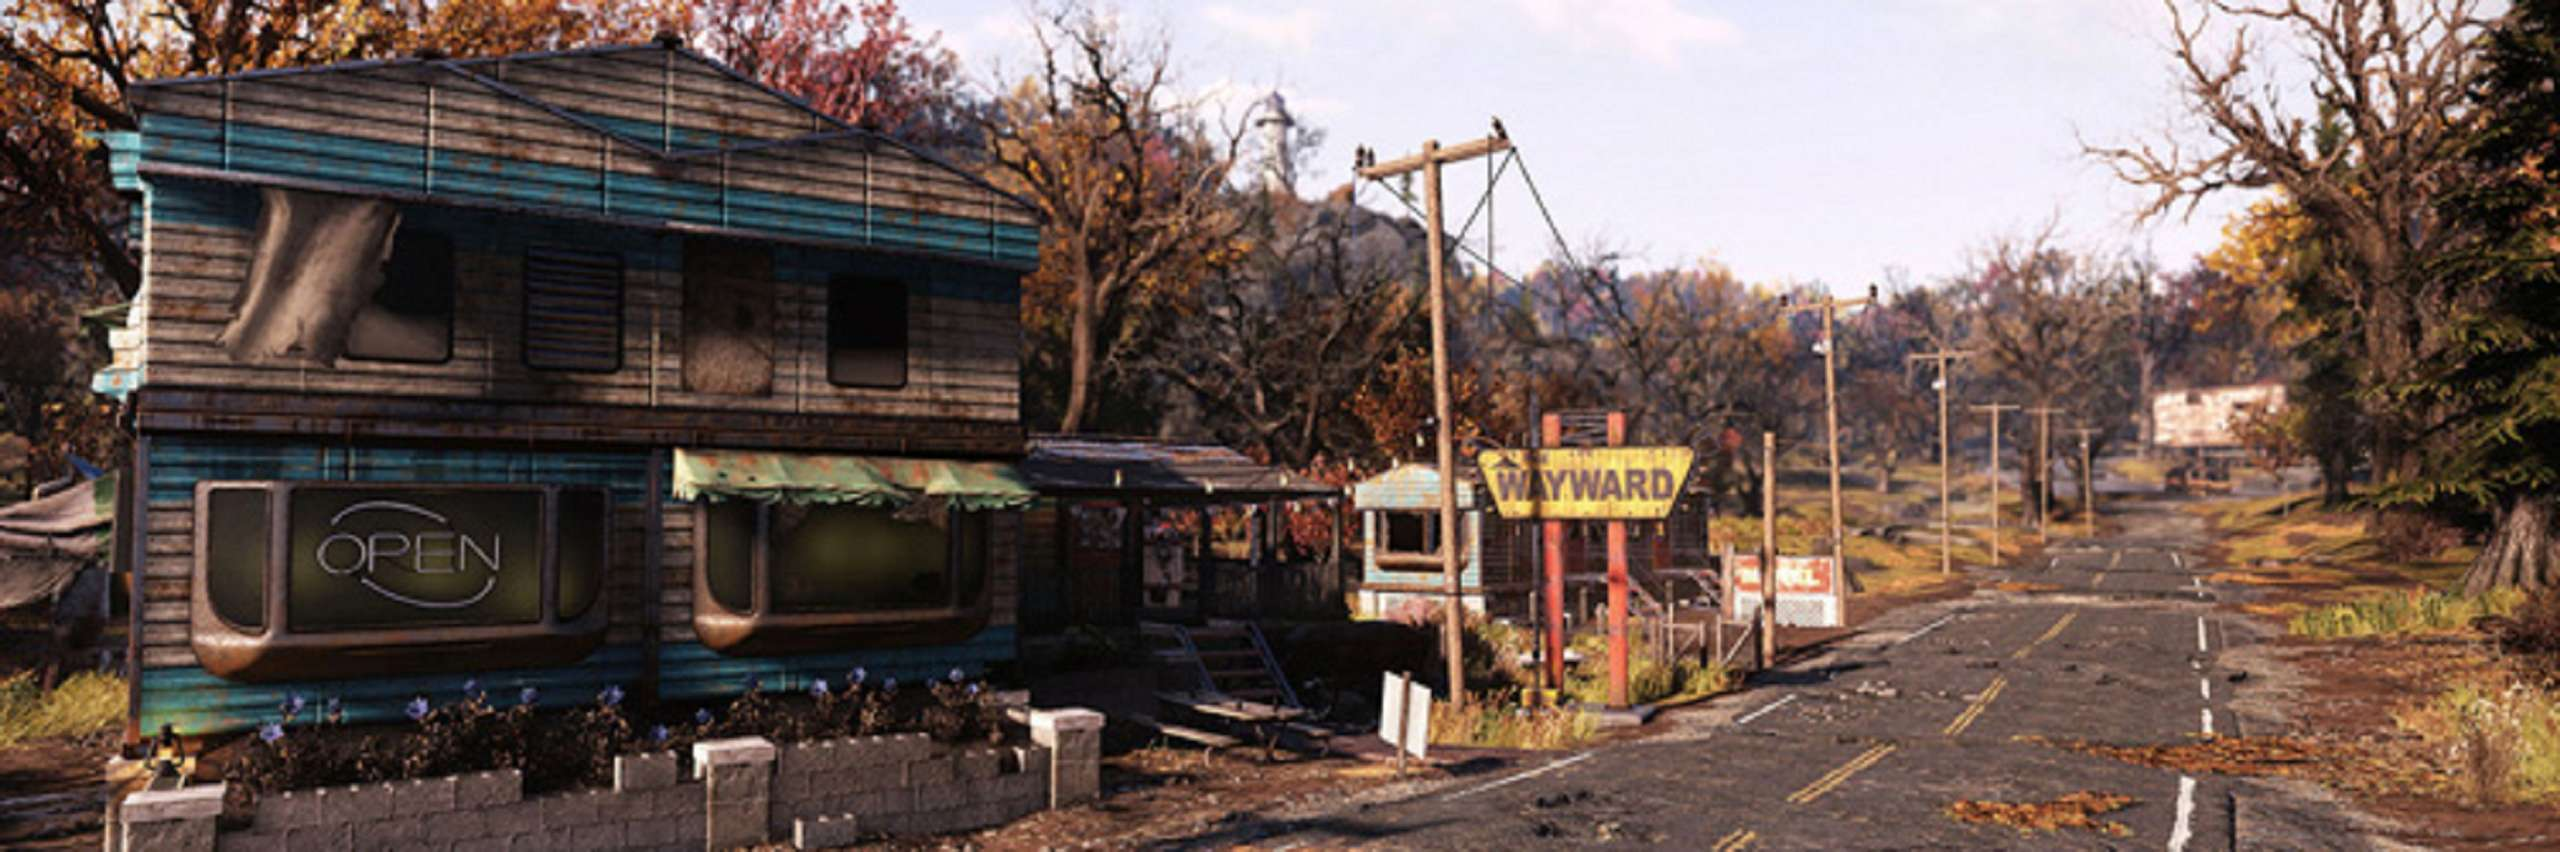 Fallout 76 Wastelanders Update Includes Allies That You Can Become Romantic With, According To Bethesda